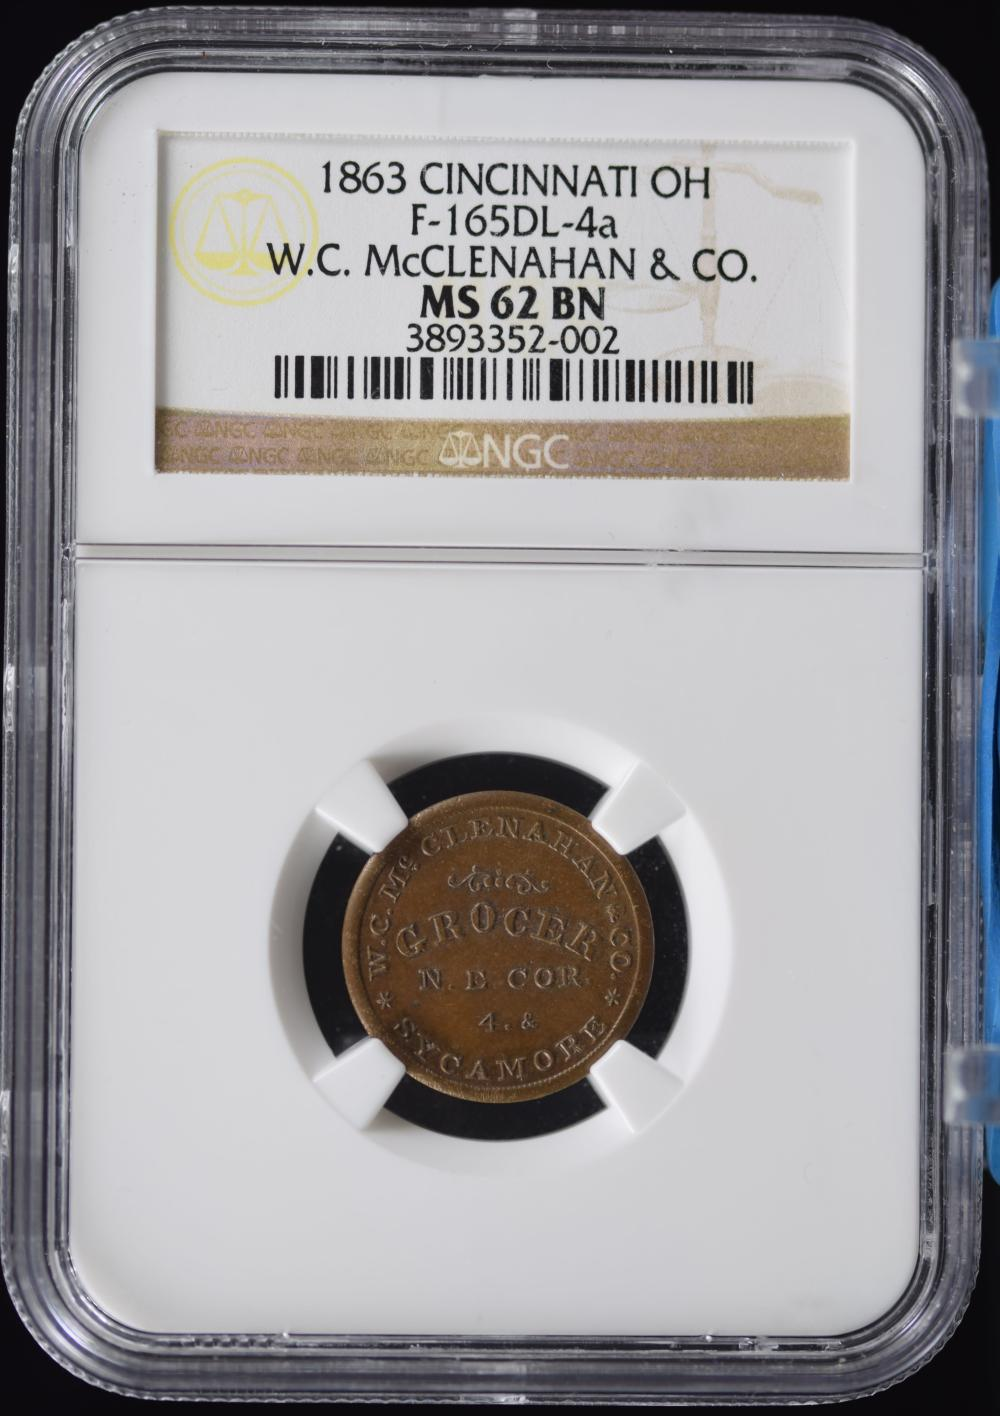 1863 CWT Cin.OH WC McClenahan Co. NGC MS-62 BN